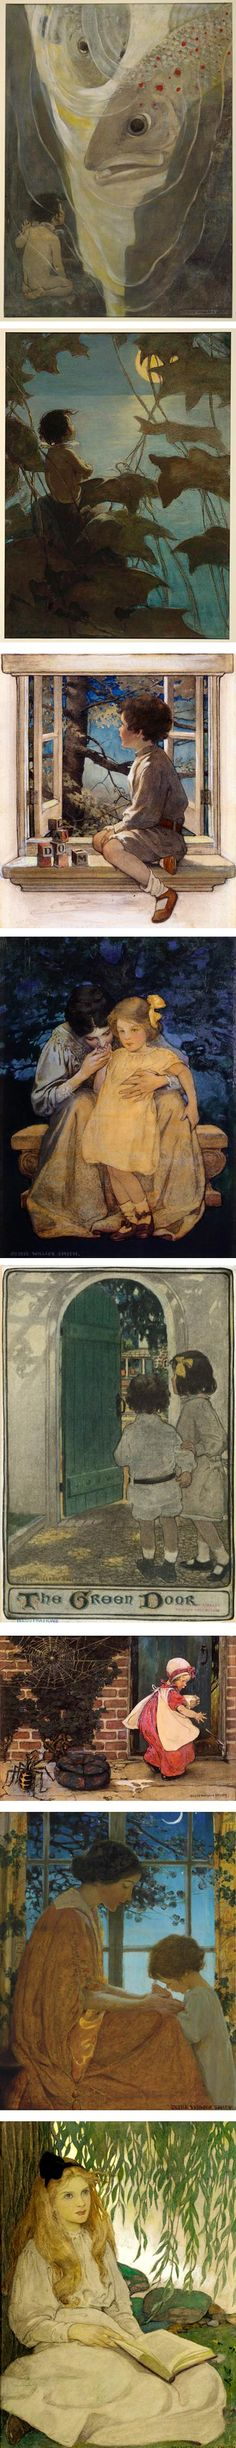 Jessie Willcox Smith was a prominent American illustrator from Philadelphia who studied at the School of Design for Women (now Moore College of Art) and the Pennsylvania Academy of the Fine Arts, where her instructors included Thomas Eakins.